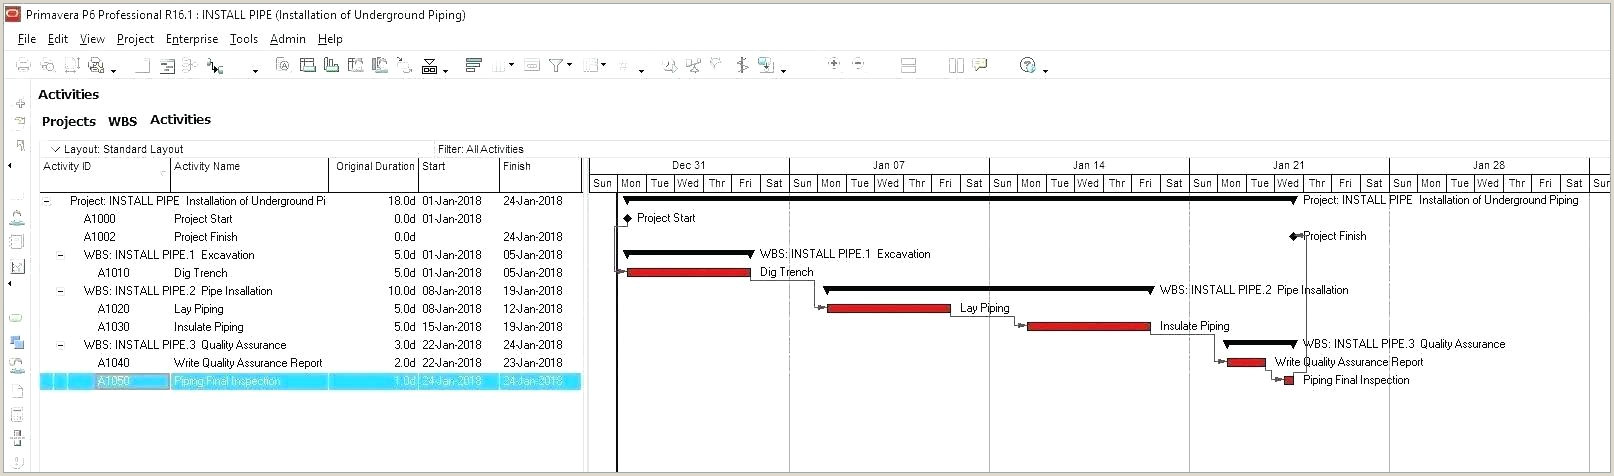 Office Inventory Template Project Inventory Template